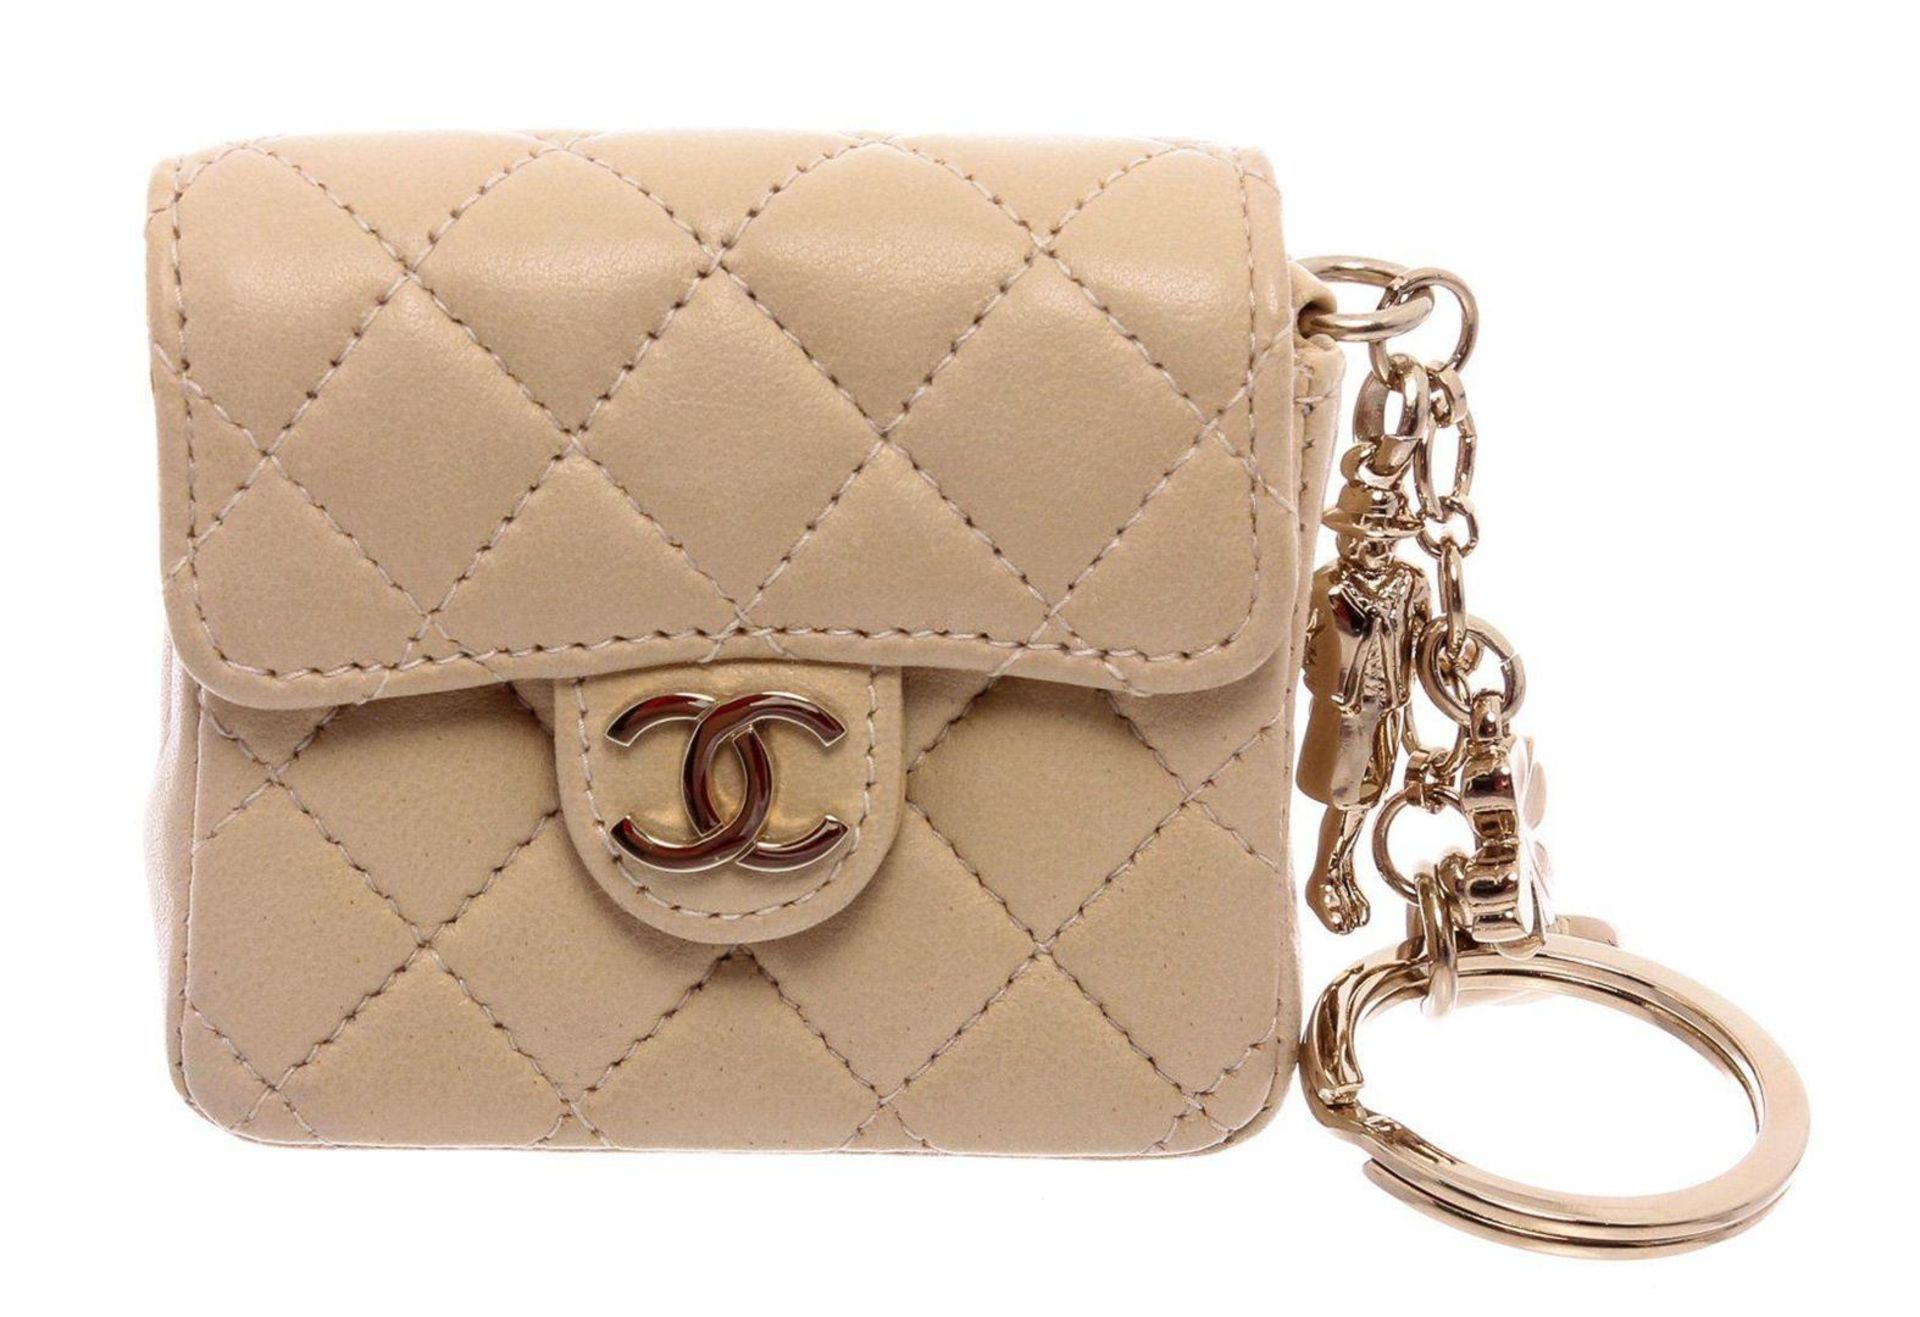 Chanel Beige Leather CC Mademoiselle Mini Flap Charm Key Ring